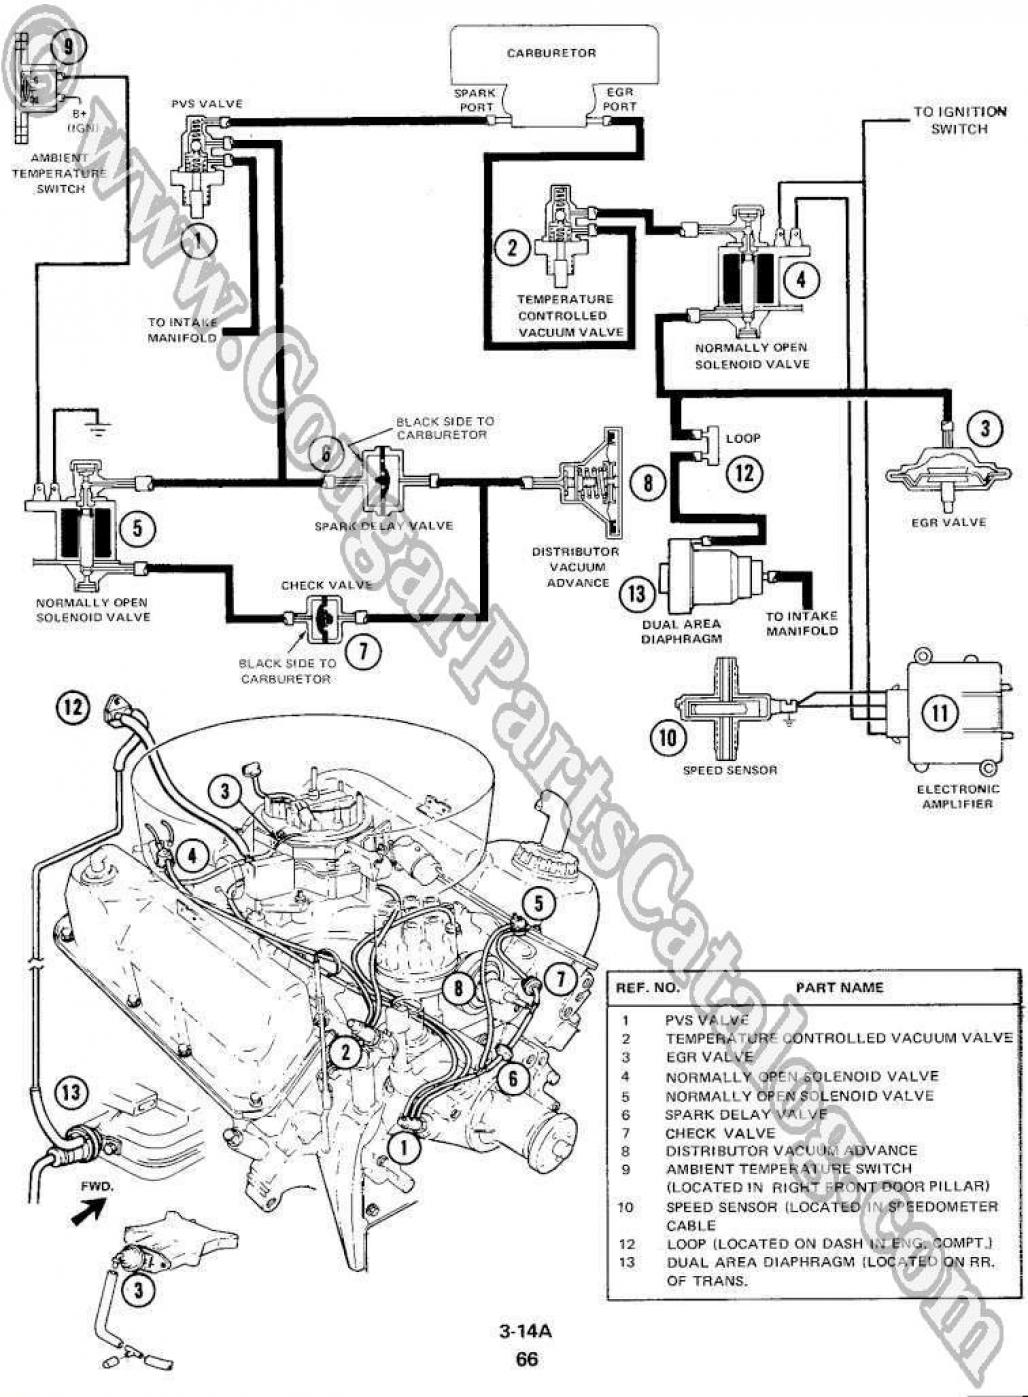 Ford 302 Distributor Wiring Diagram from i2.wp.com